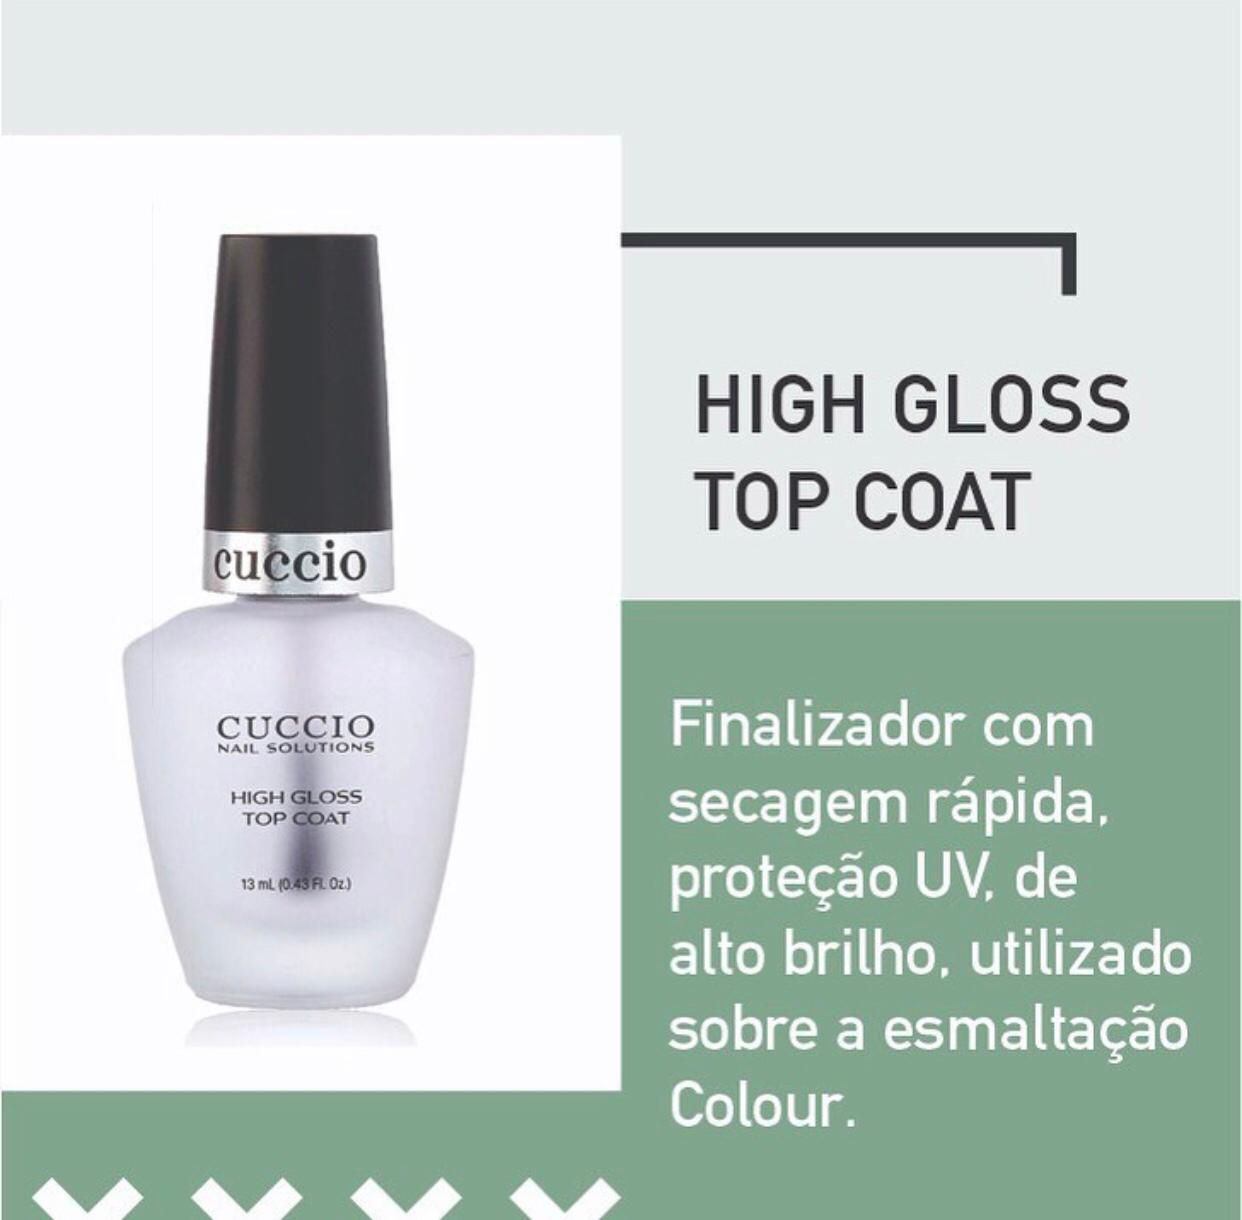 HIGH GLOSS TOP COAT - 13ML (EXTRA BRILHO)